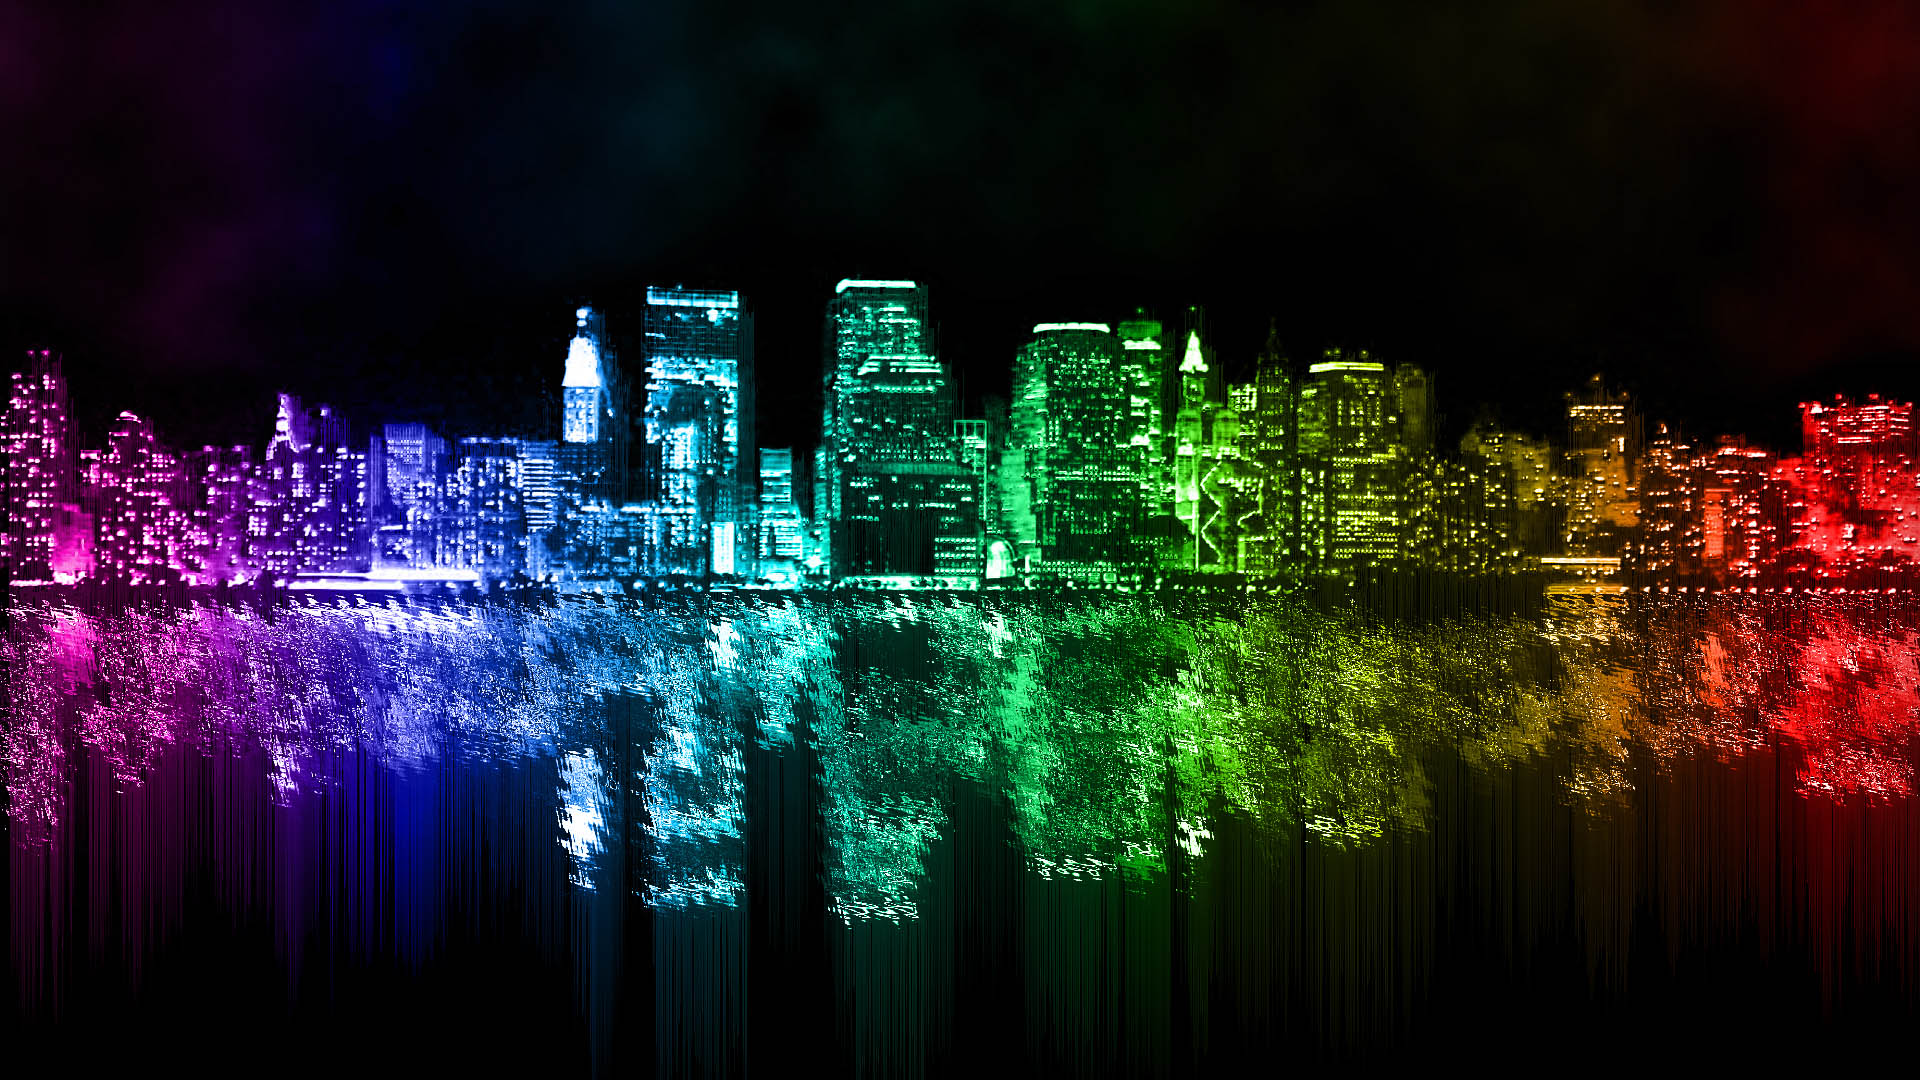 46 Amazing City Wallpapers In HD For Download 1920x1080